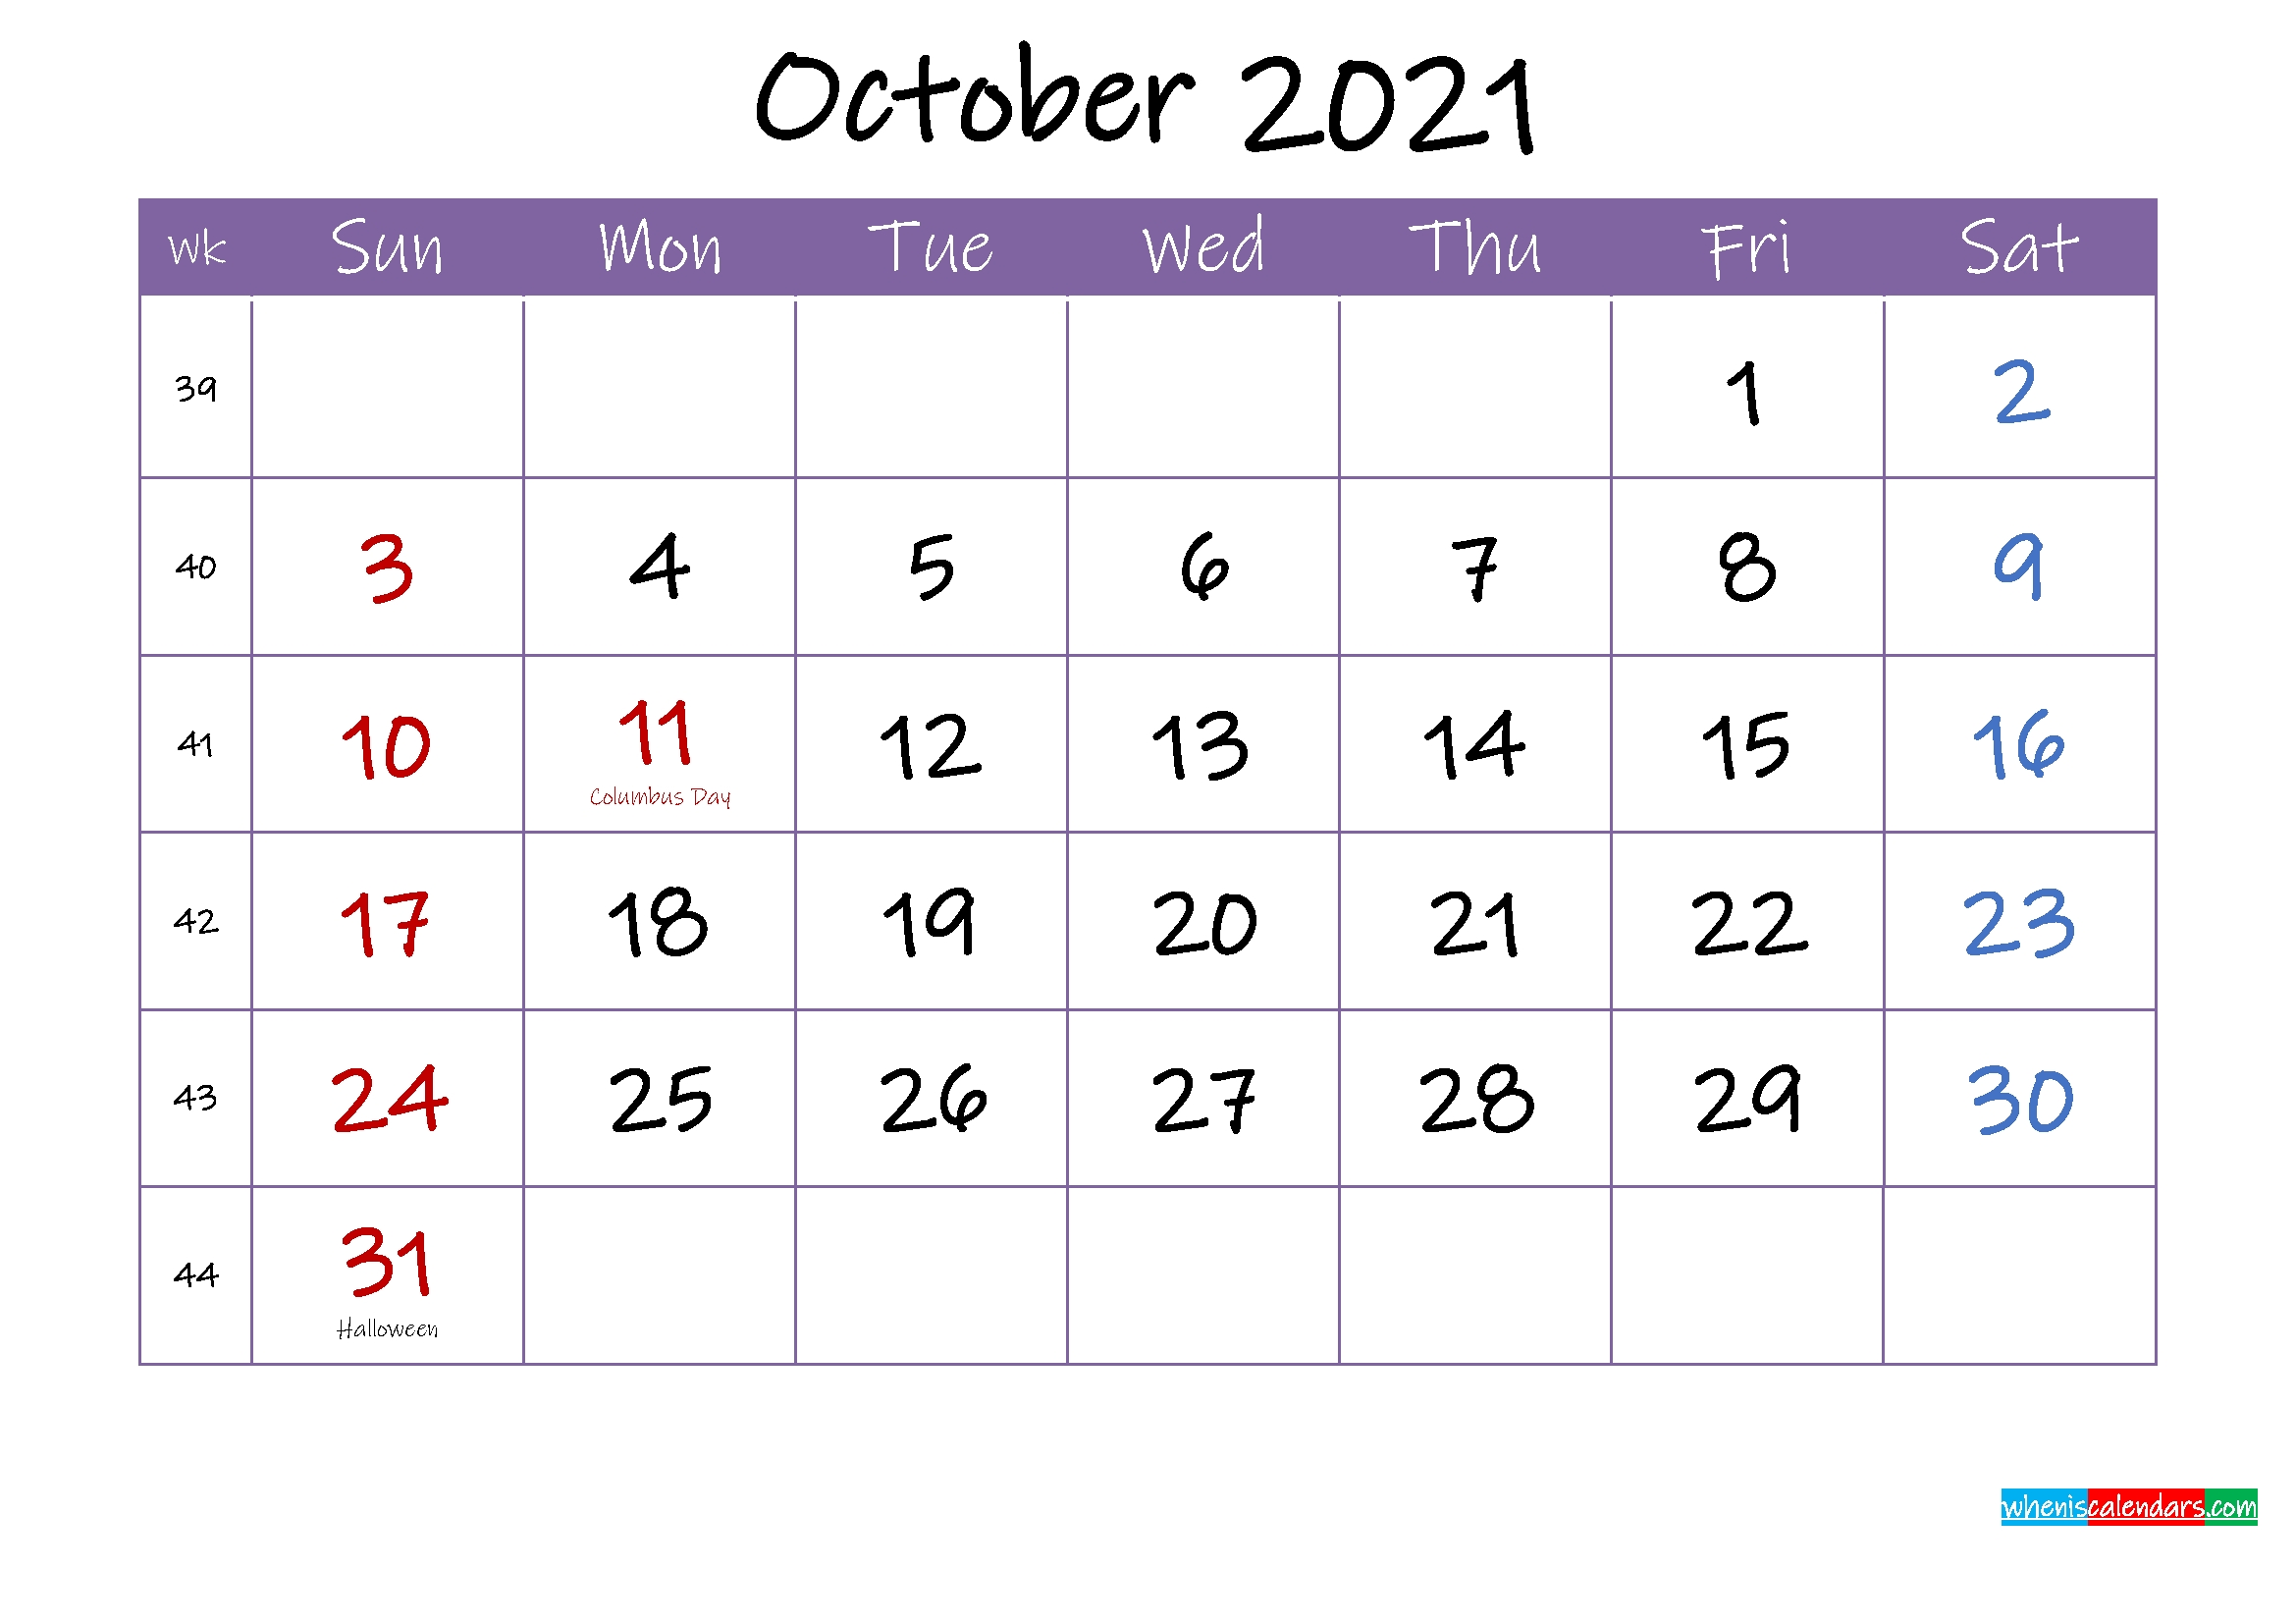 October 2021 Calendar With Holidays Printable - Template